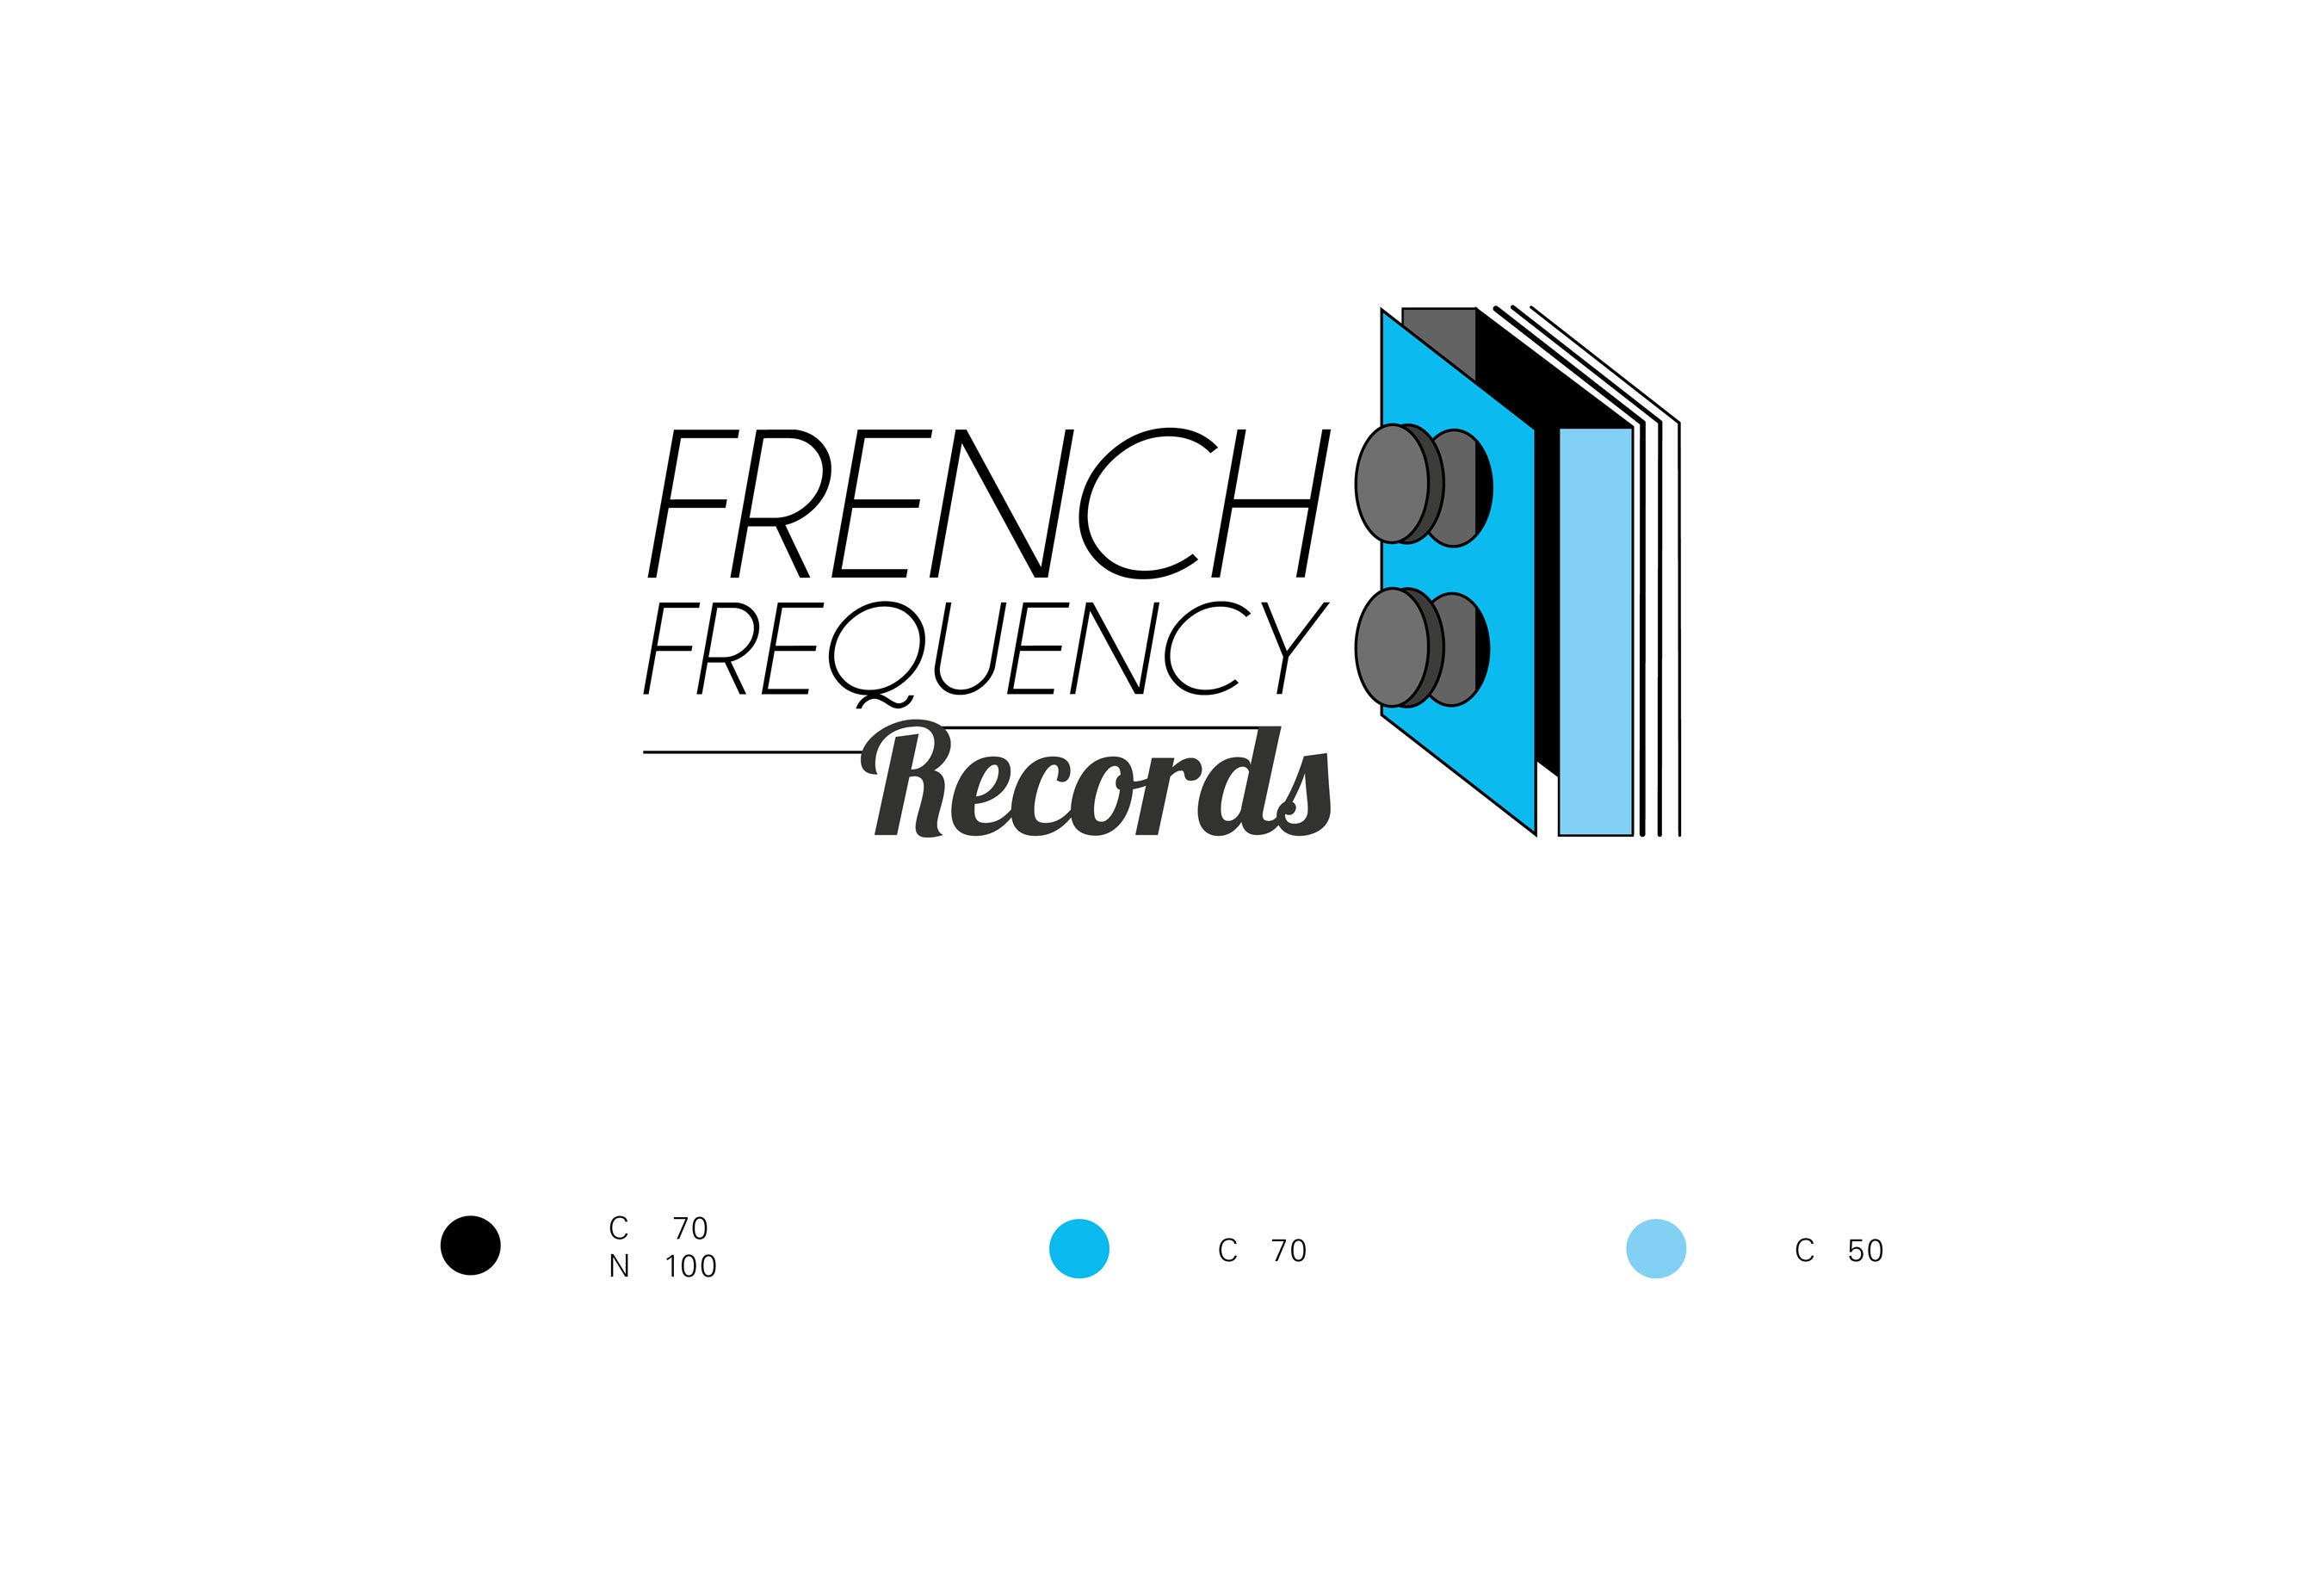 French Frequency Records 3